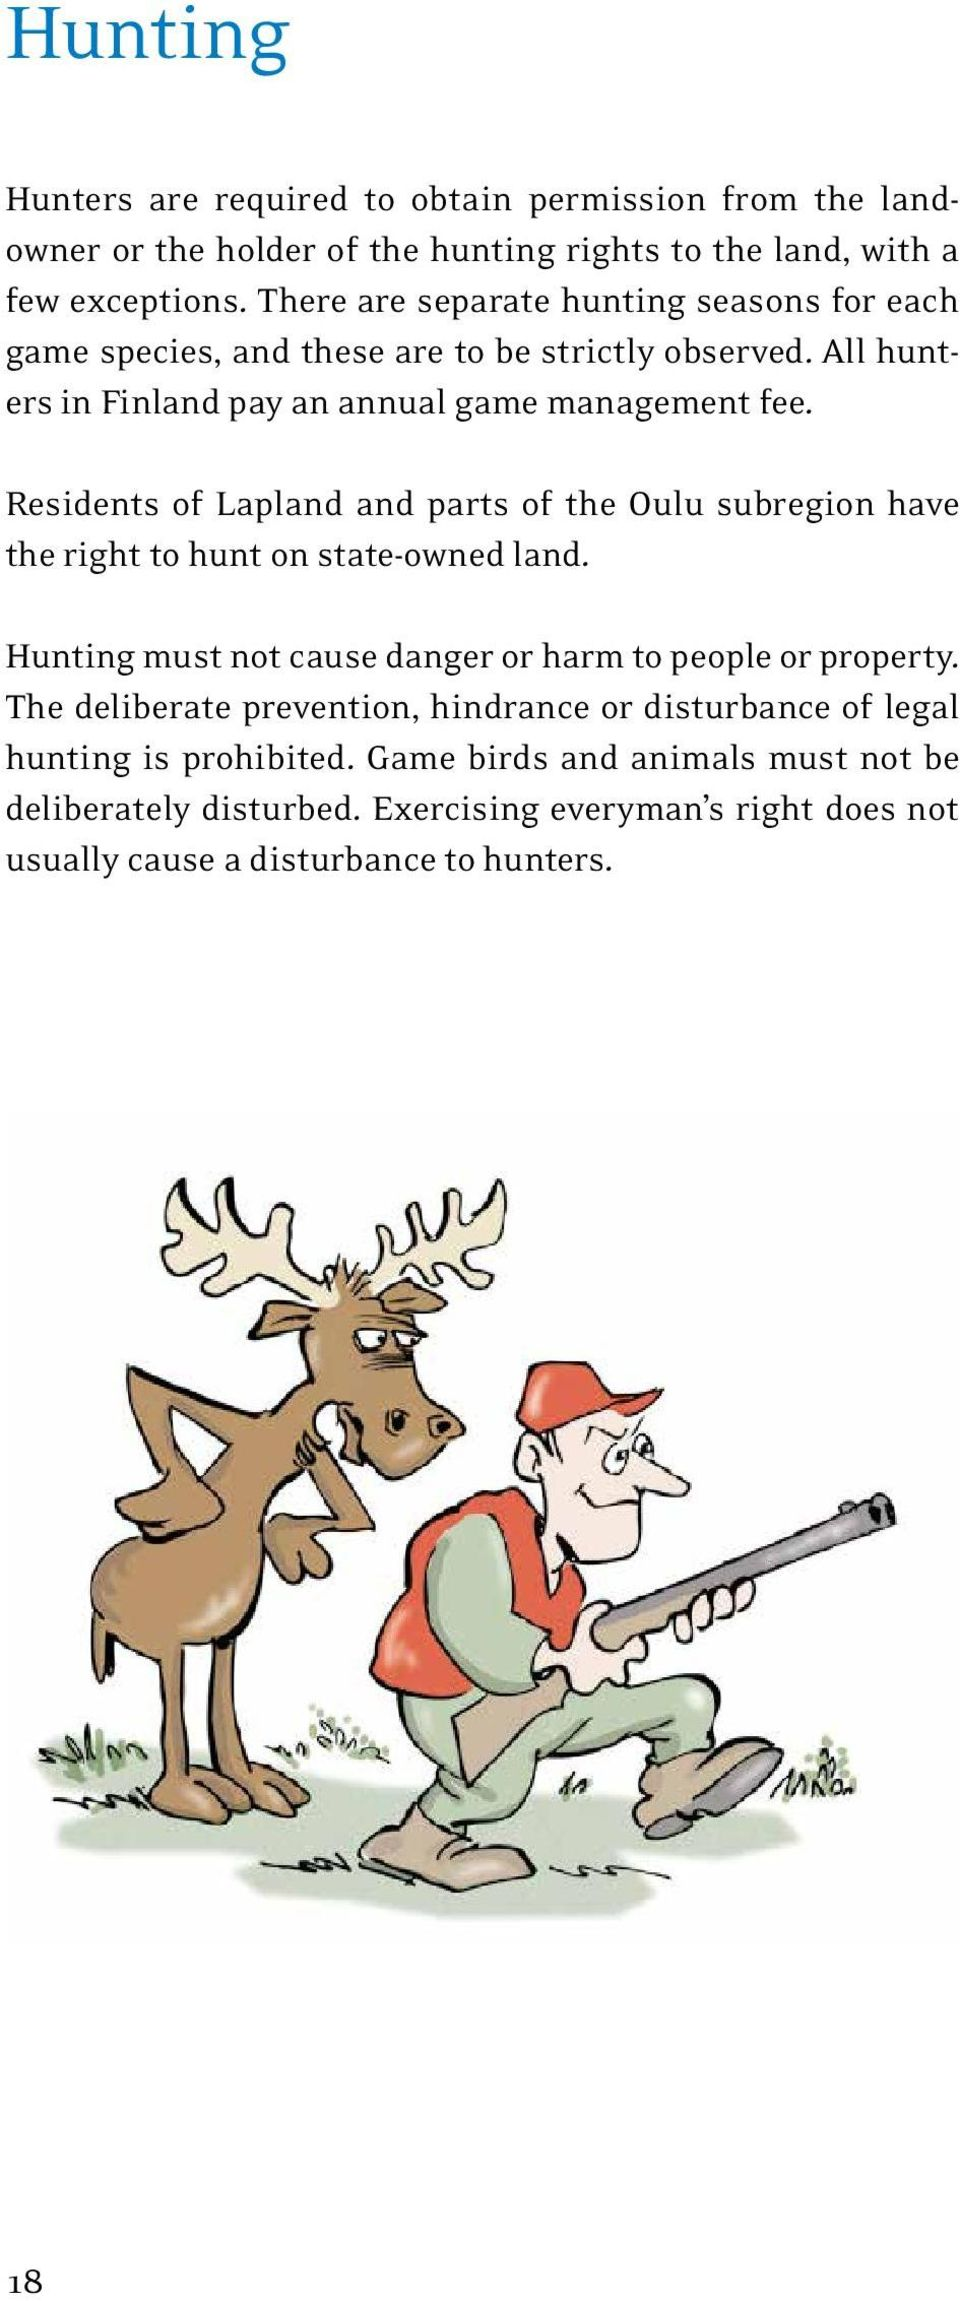 Residents of Lapland and parts of the Oulu subregion have the right to hunt on state-owned land. Hunting must not cause danger or harm to people or property.